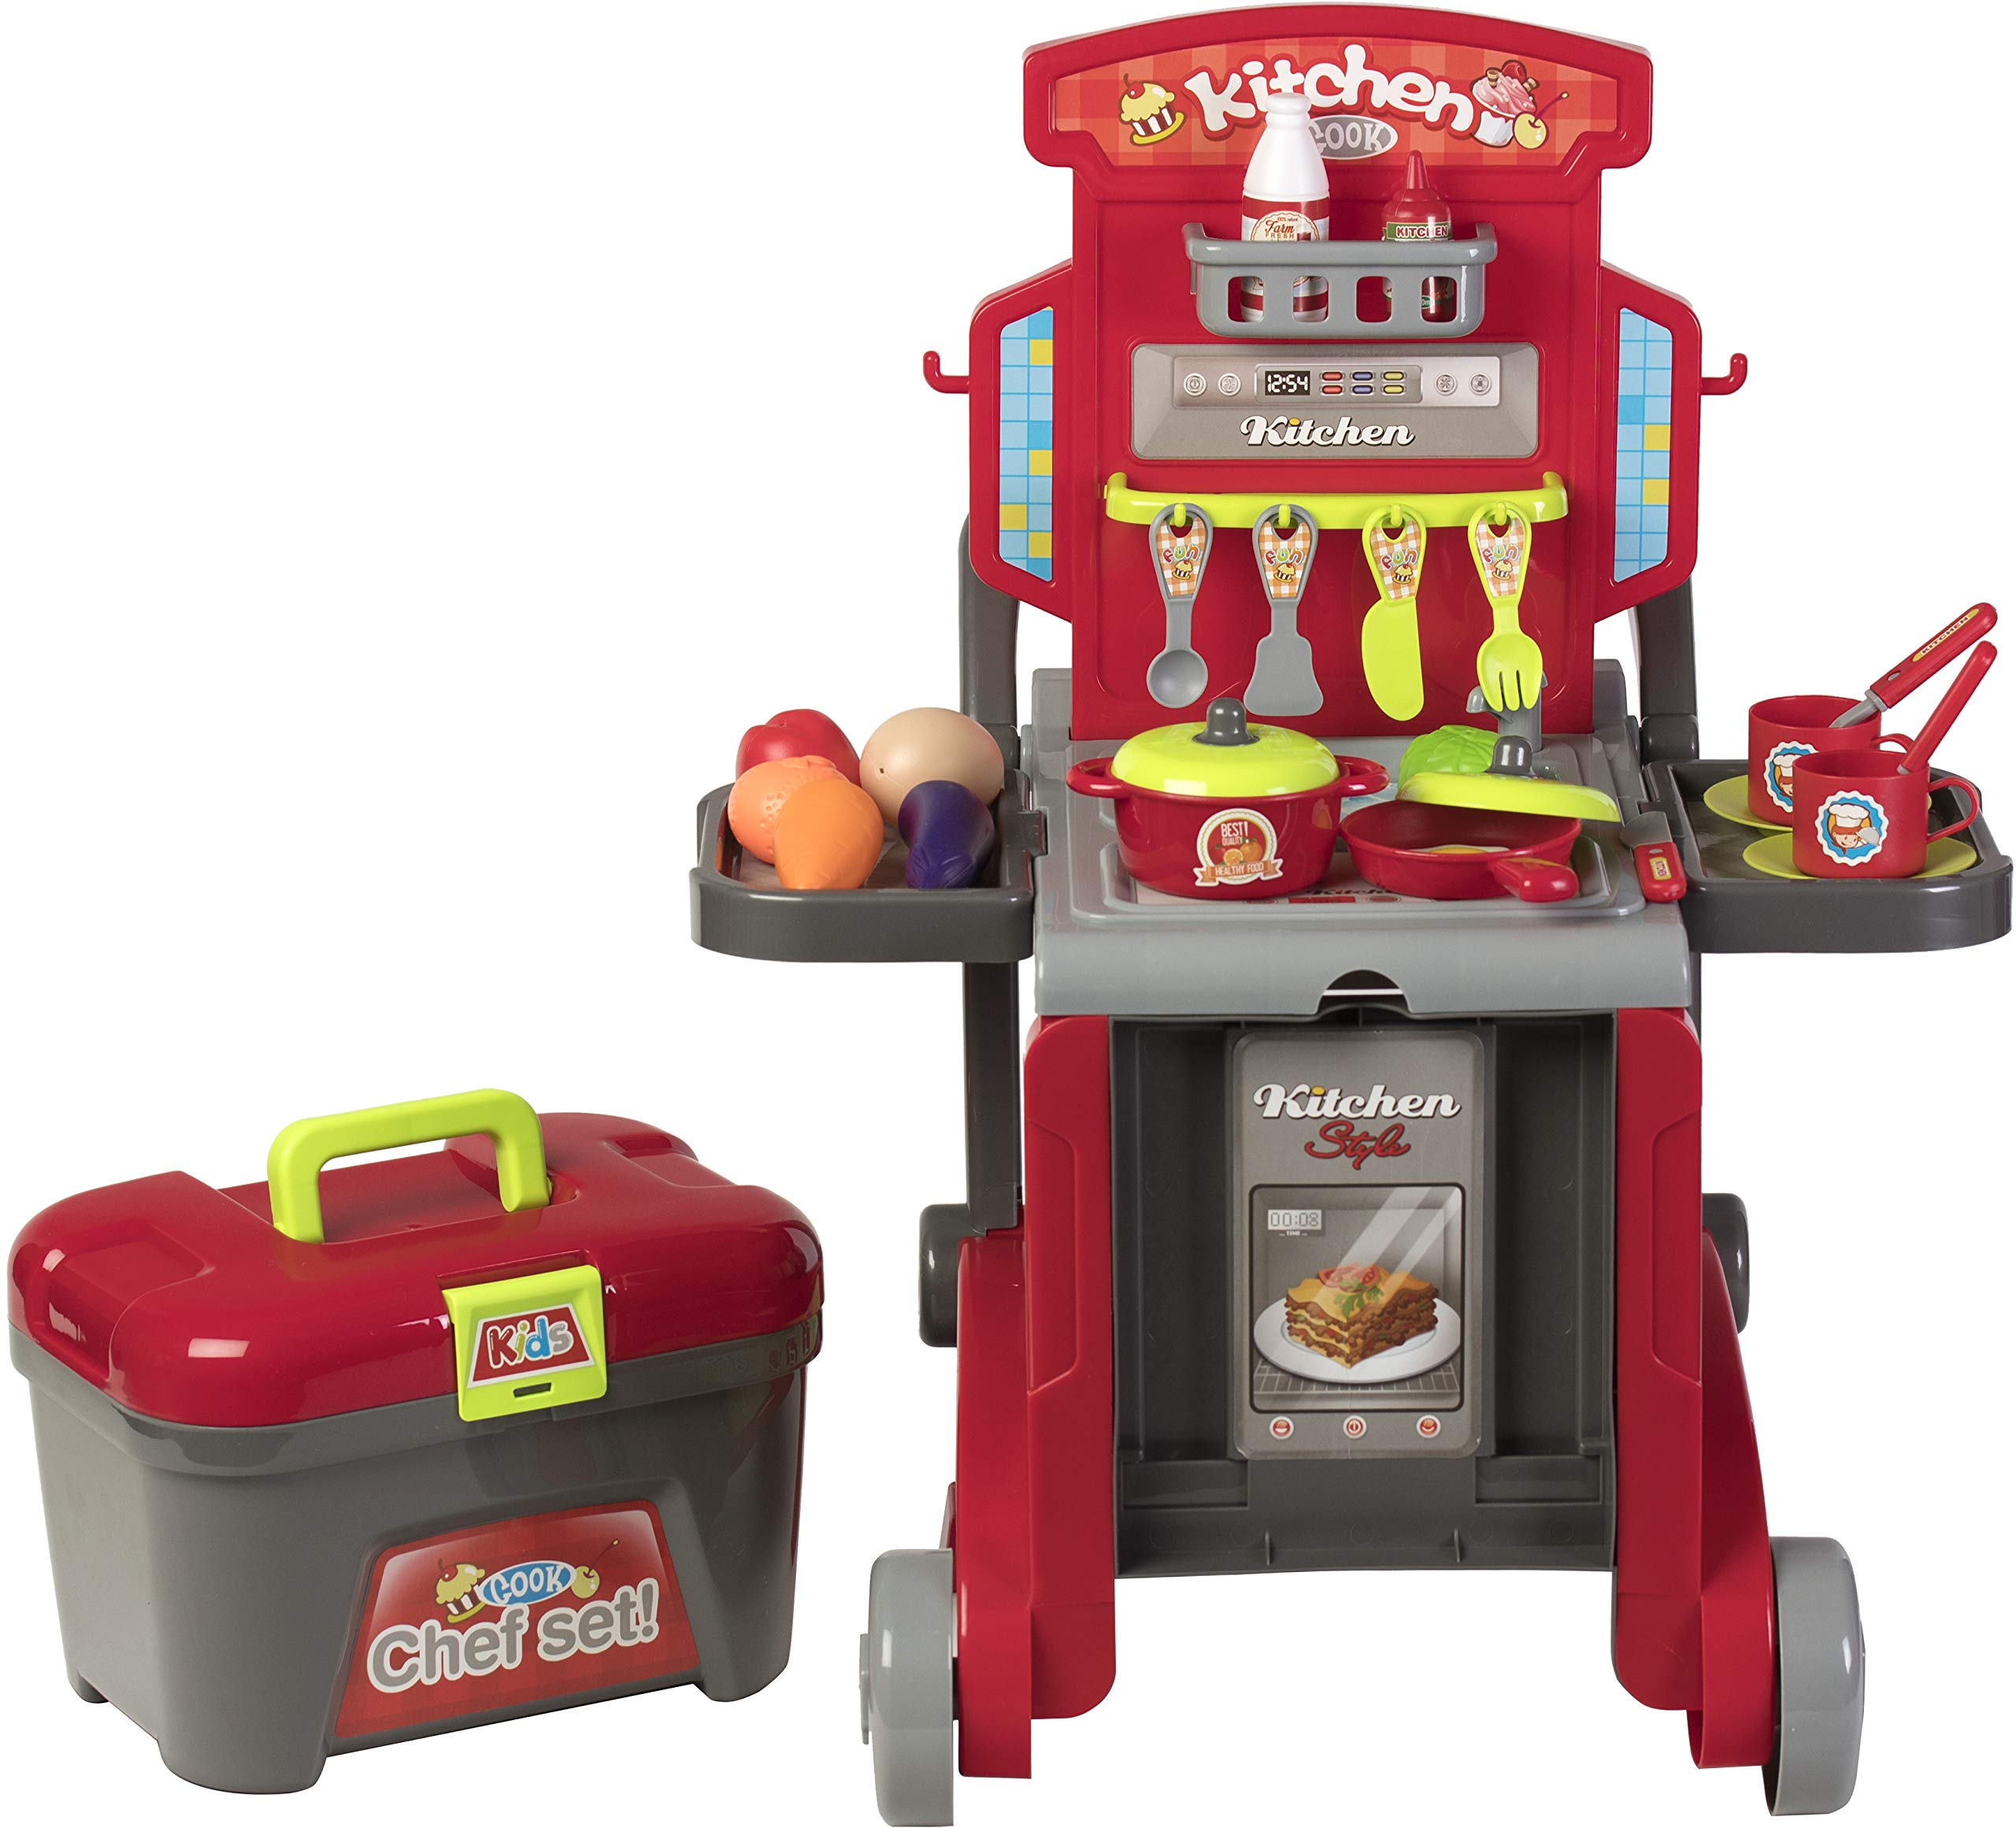 Kitchen Cook Grill Boys Playset Oven Stove, Vegetables, Pots & Pans, Cups, Utensils w/ Compact Carry Case by Kitchen Cook (Image #2)